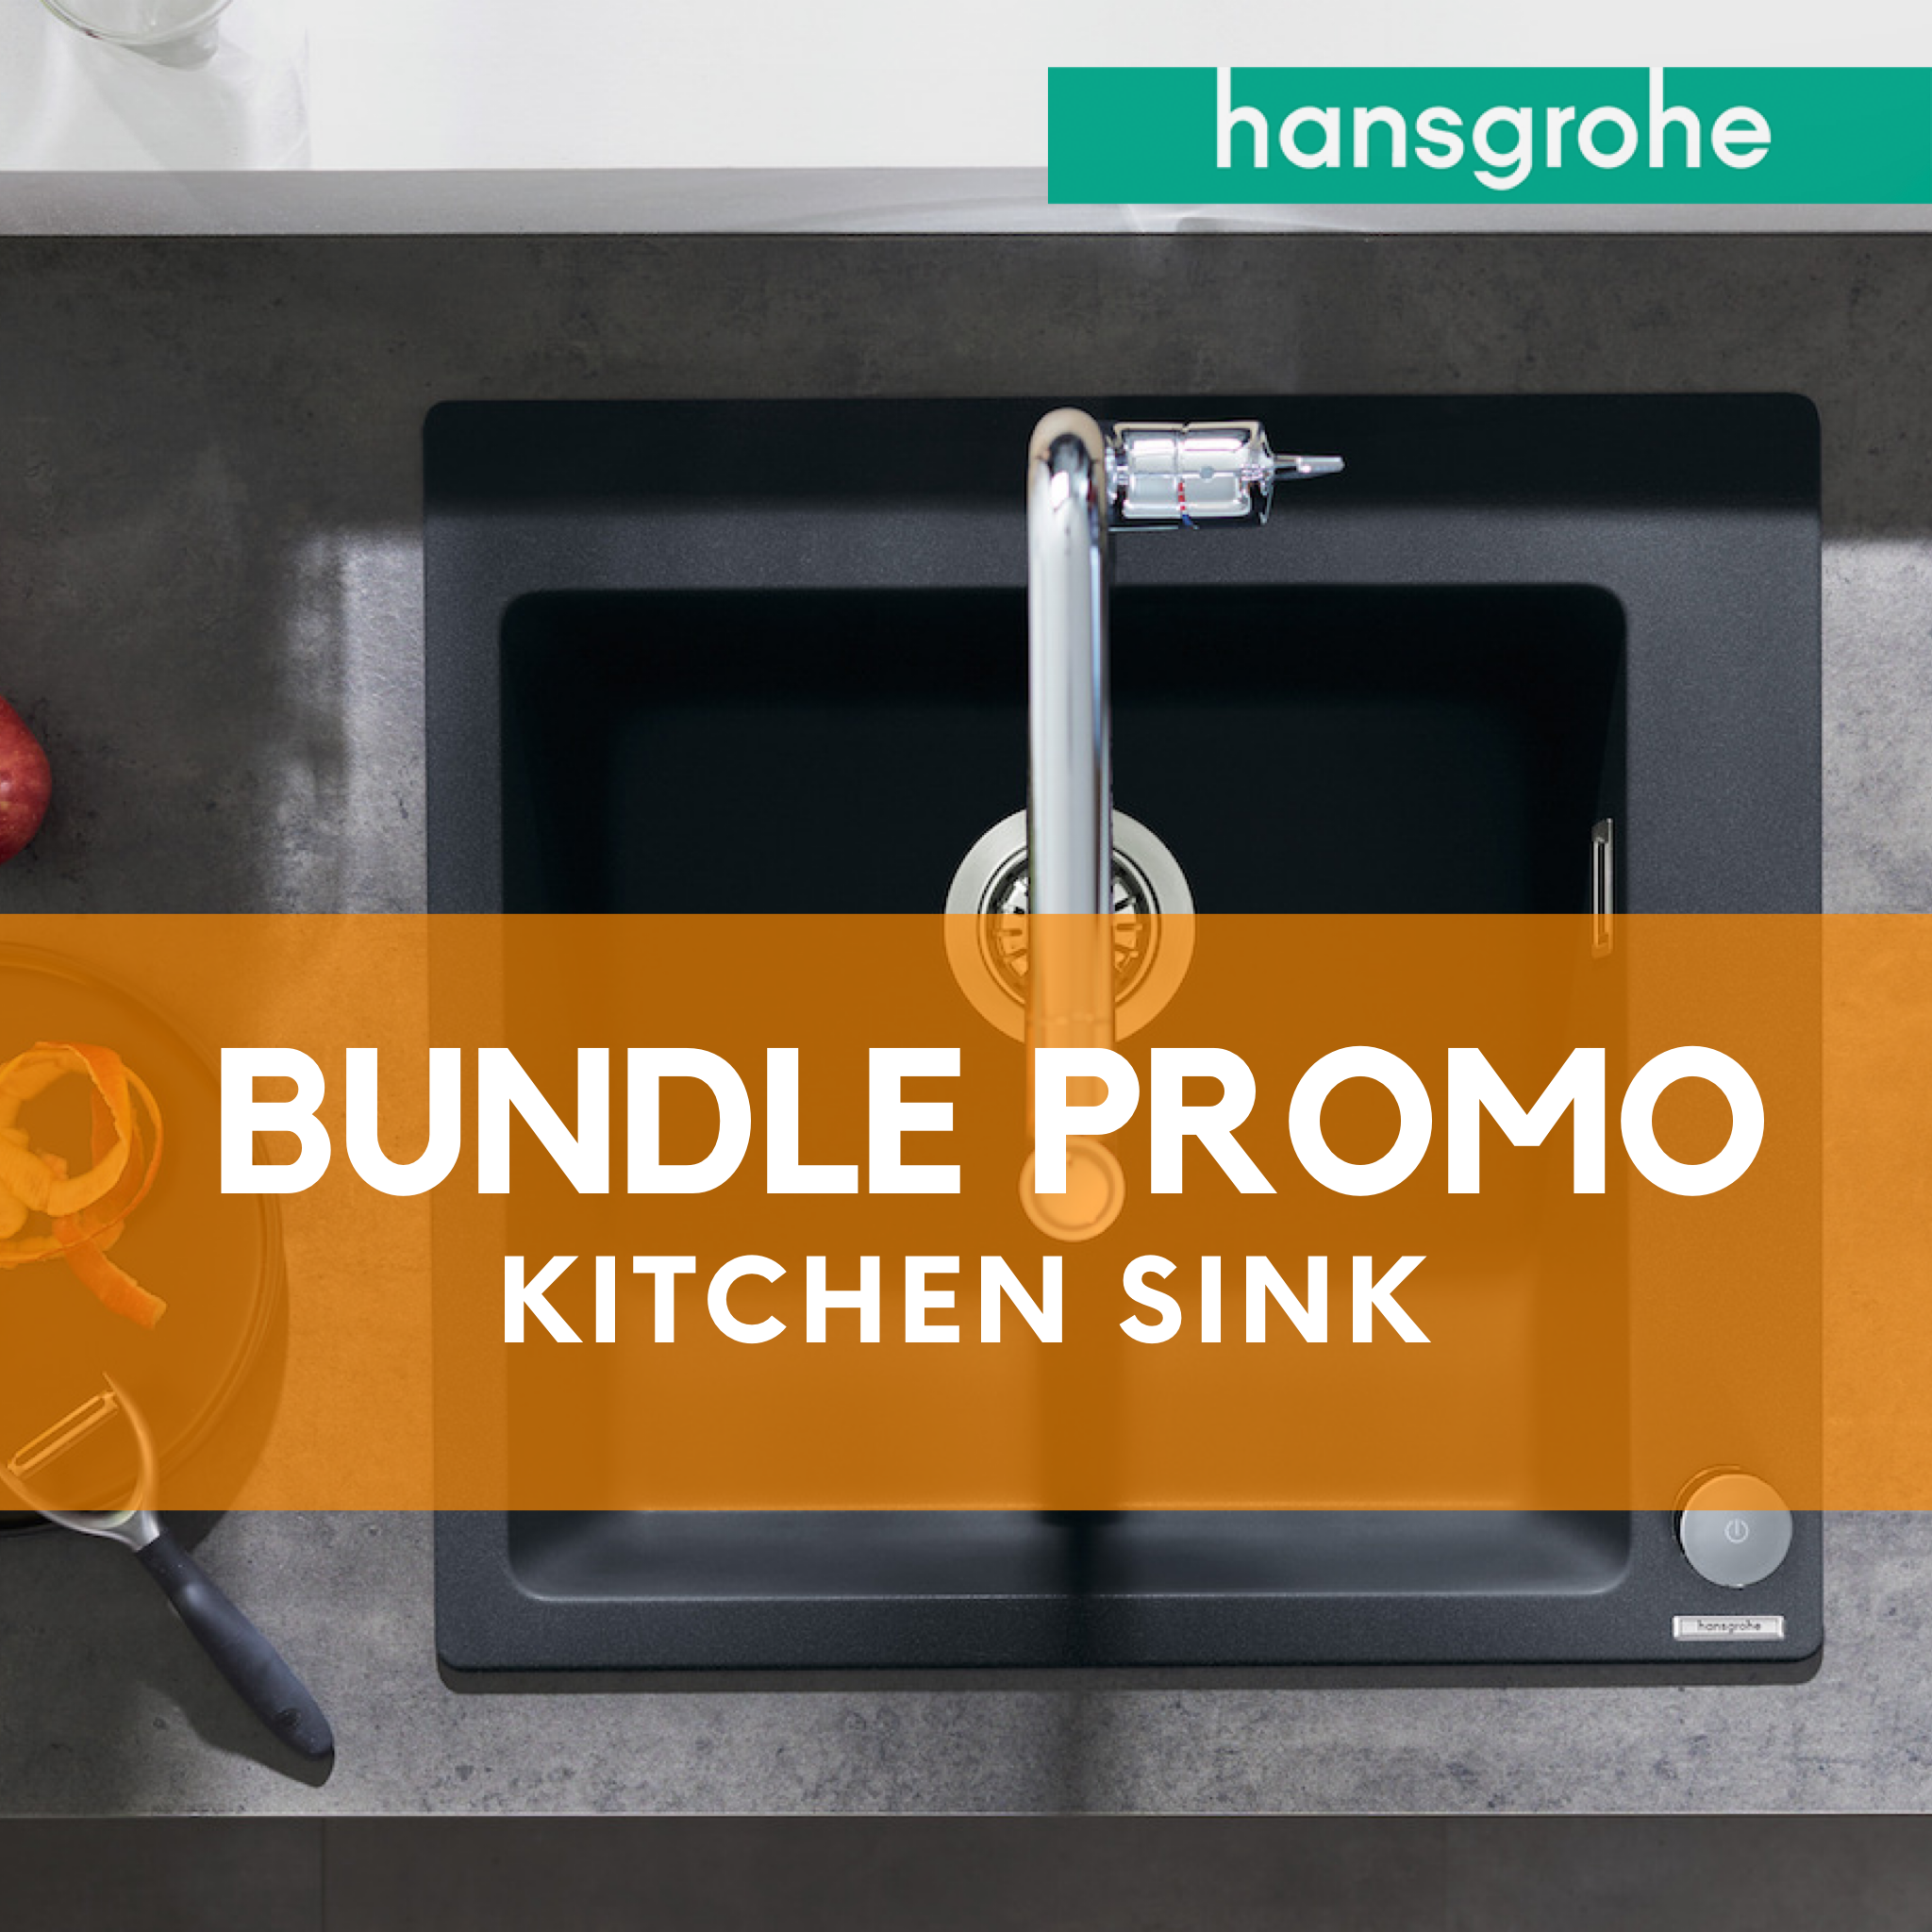 BUNDLE Promo hansgrohe Kitchen Sink